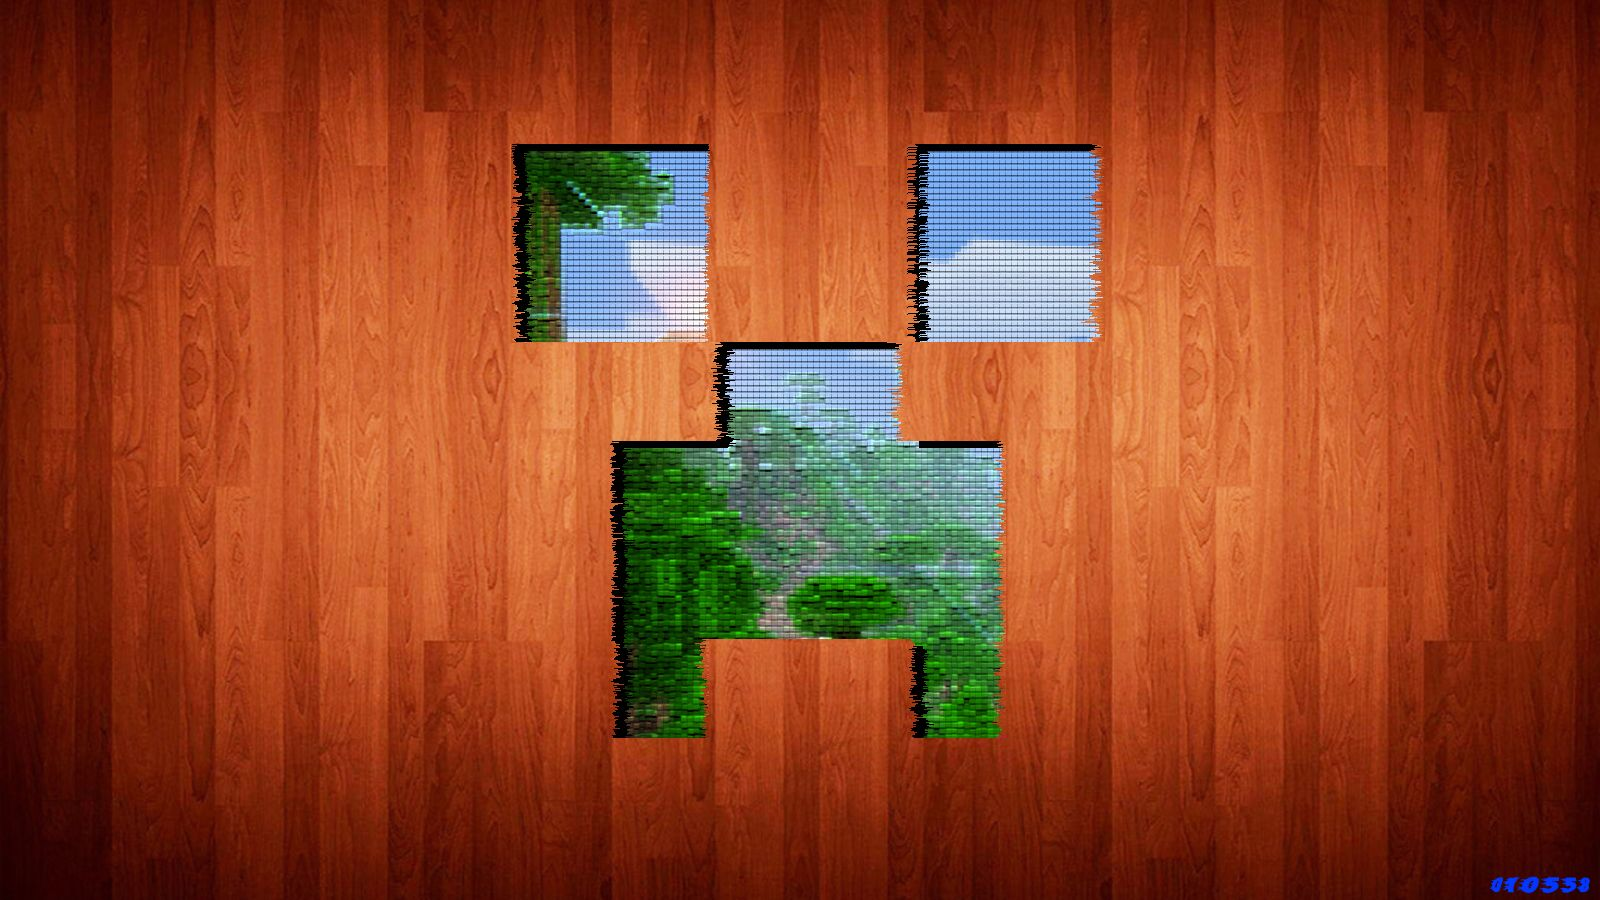 Creeper Wallpaper Minecraft Wallpaper 1600×900 Creeper Wallpaper (46 Wallpapers) | Adorable Wallpapers